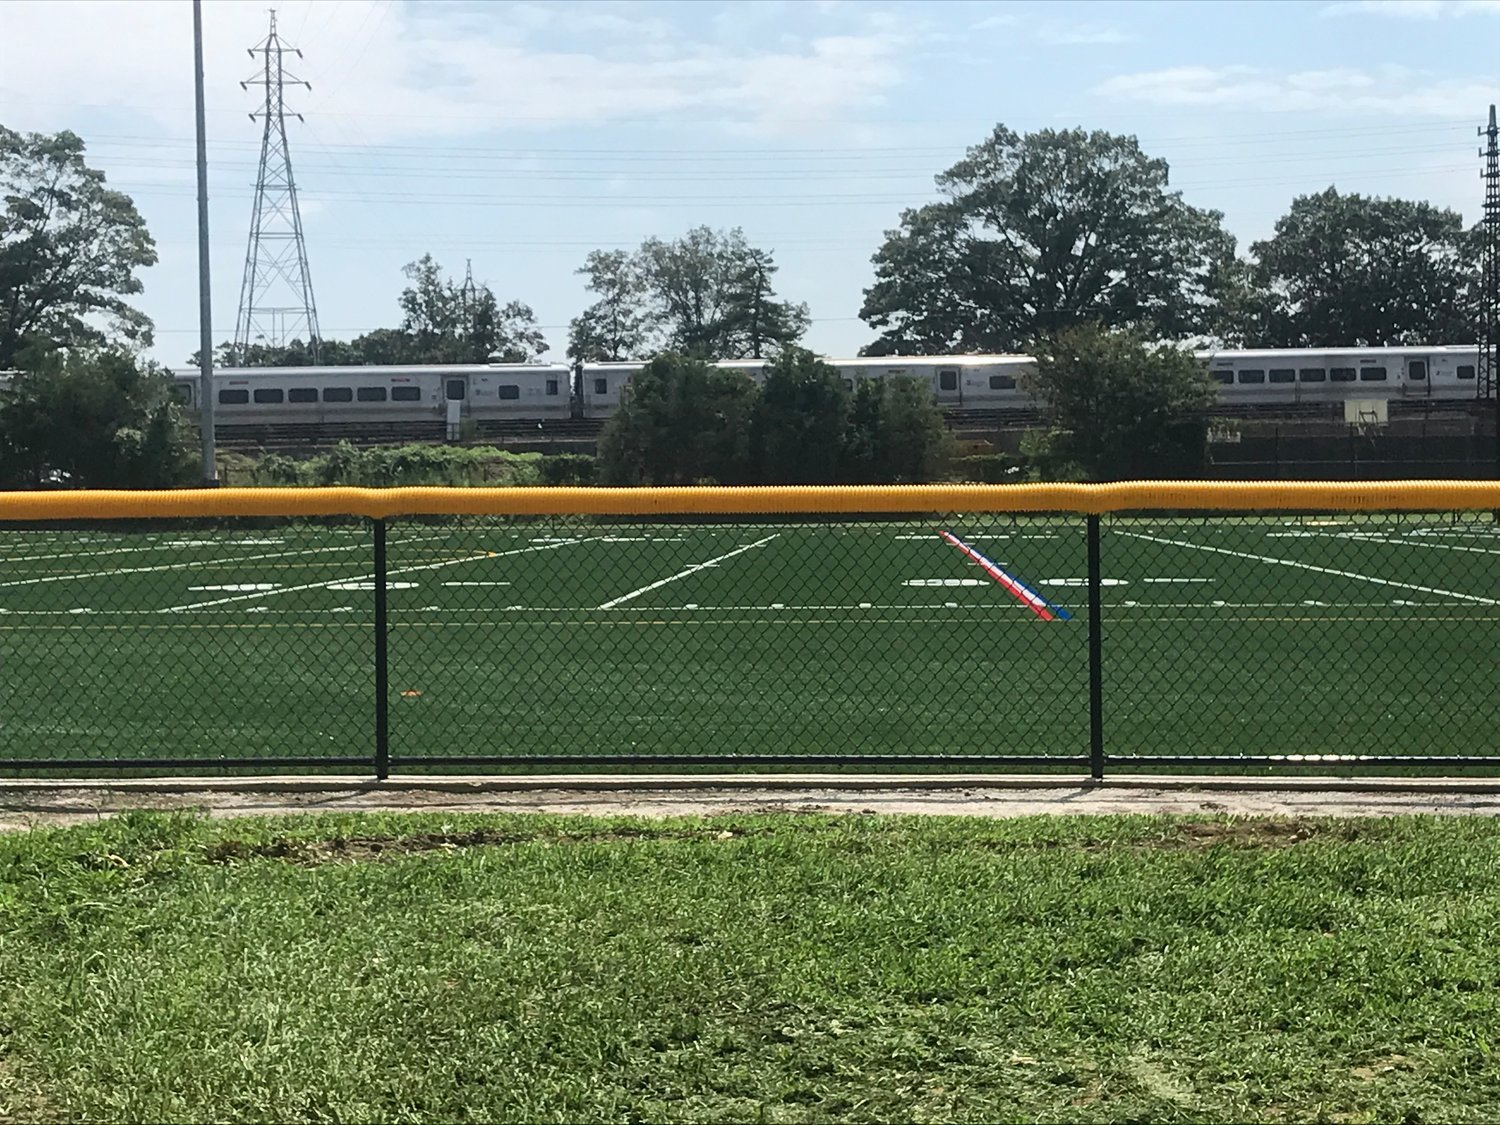 Artificial turf fields were installed at Greis Park late last year, and many more improvements are planned for the facility.